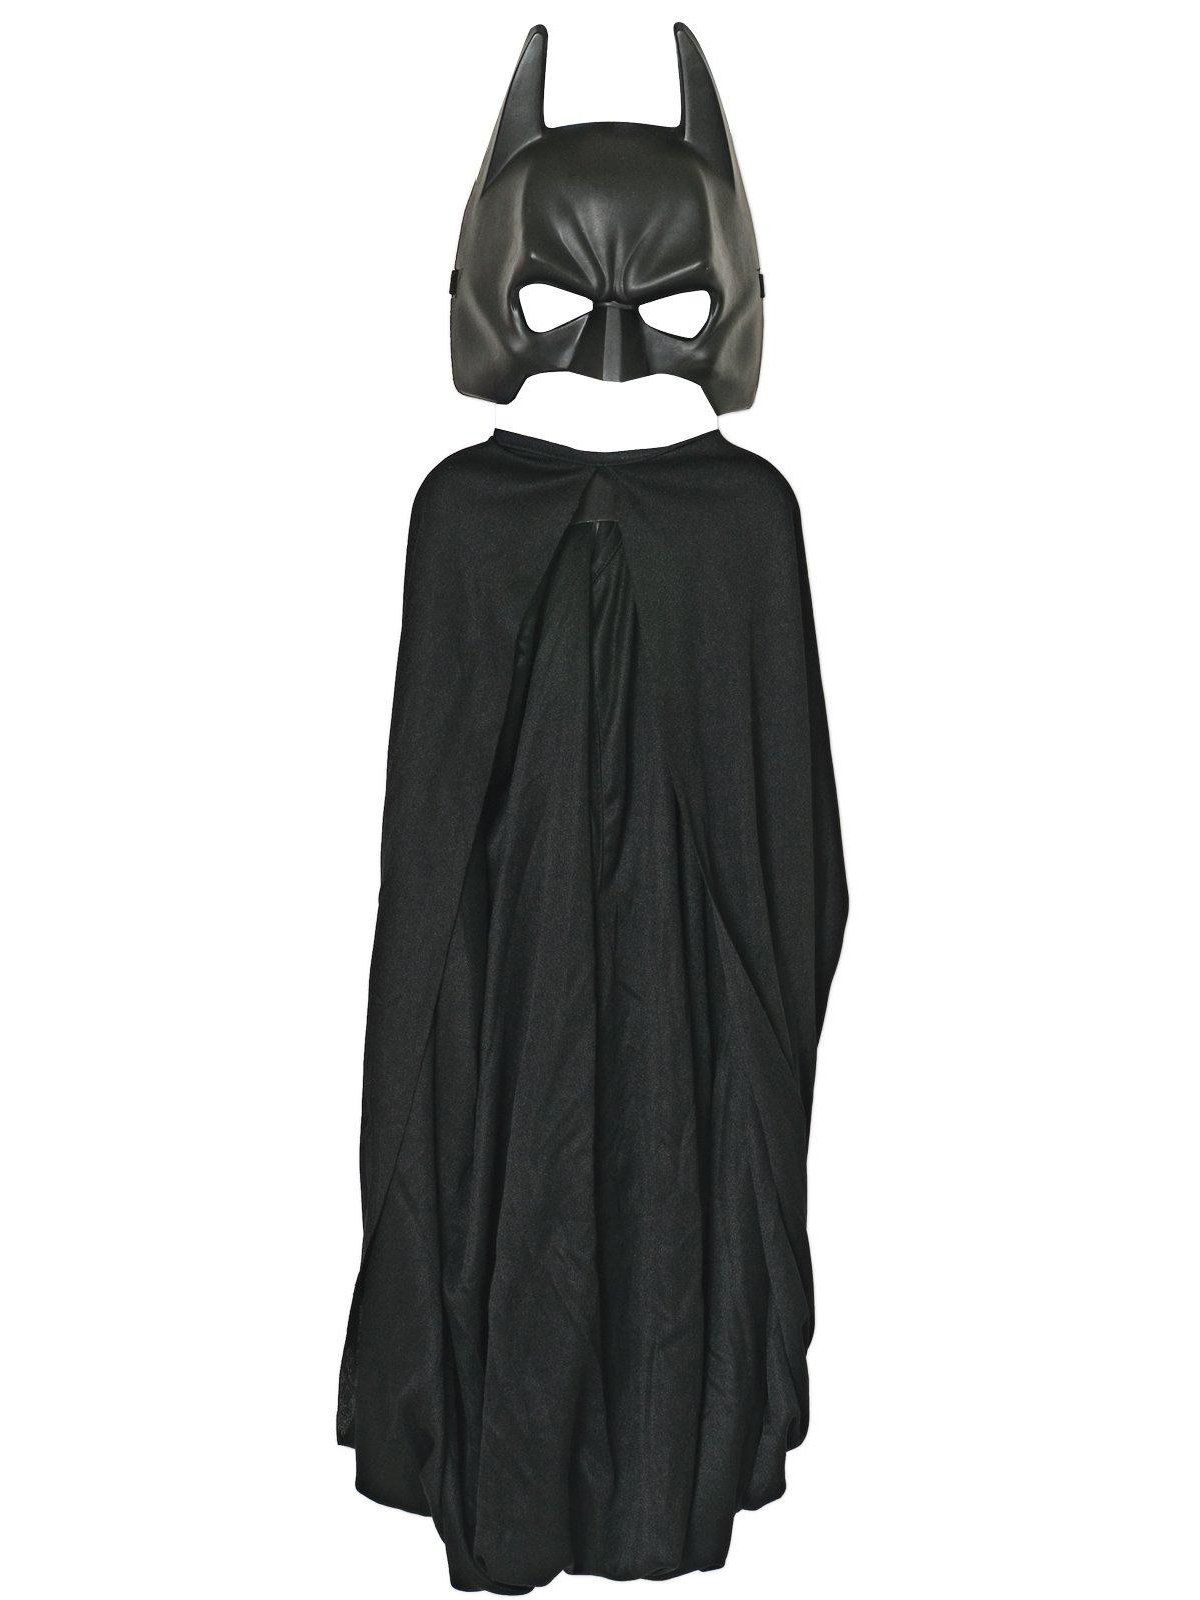 The Dark Knight Rises Batman Costume Kit For Children  sc 1 st  Wholesale Halloween Costumes & The Dark Knight Rises Batman Costume Kit For Children - Costume ...